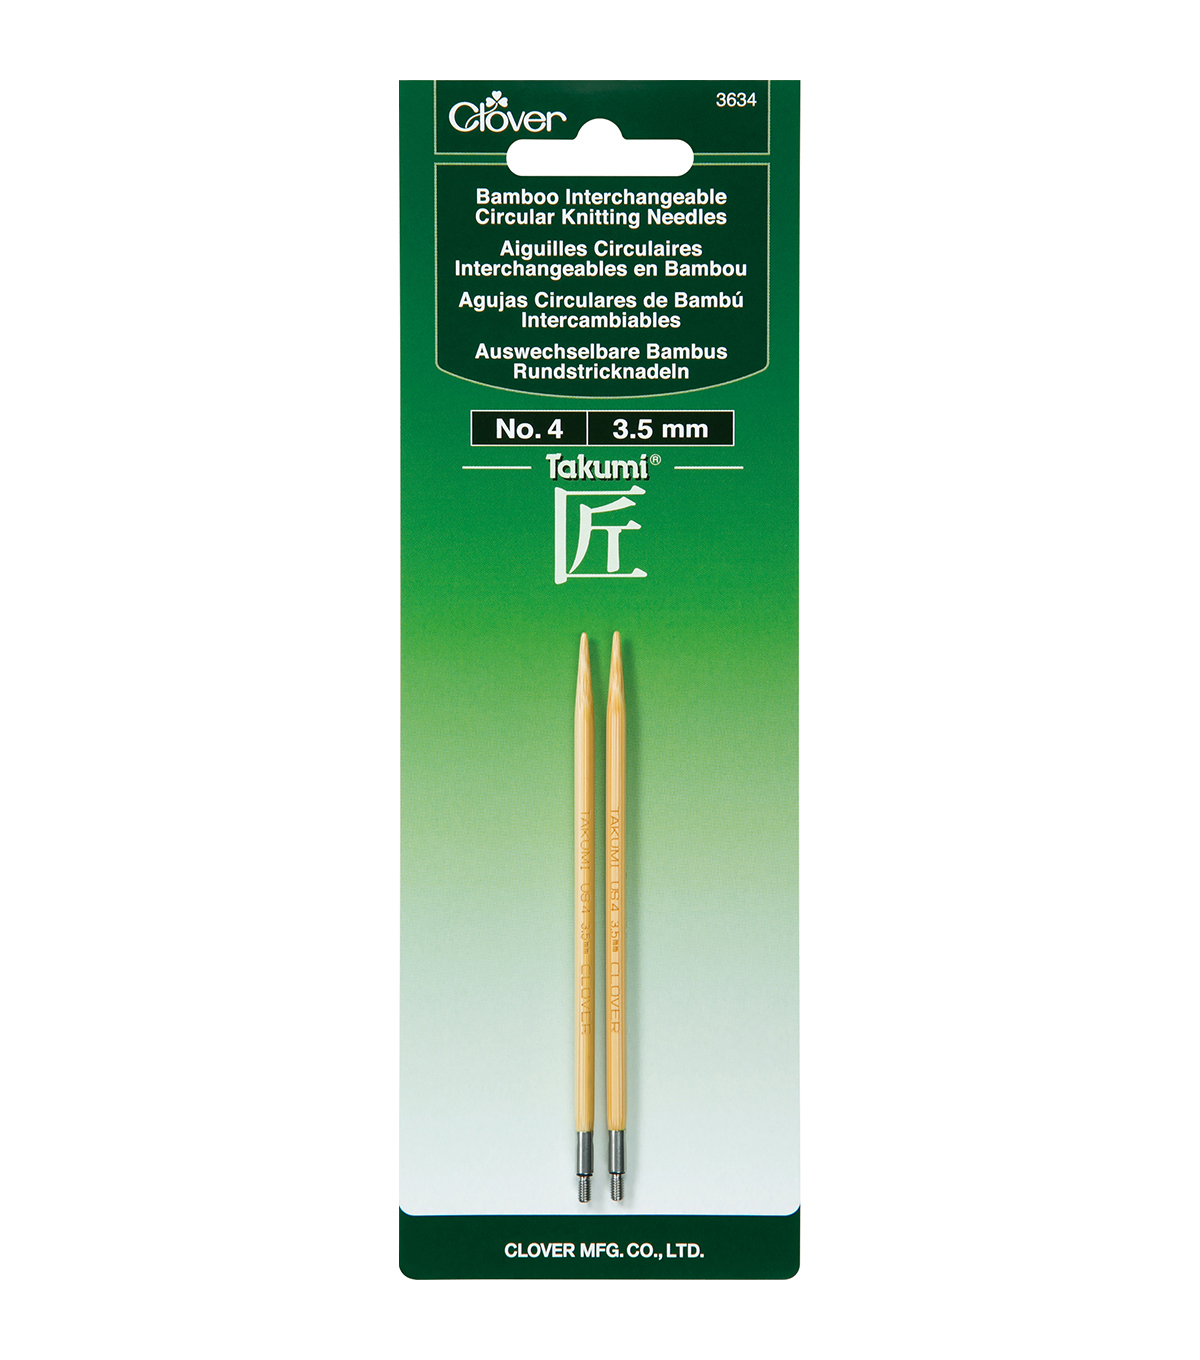 Clover Takumi Interchangeable Circular Knitting Needles Size 4/3.5mm